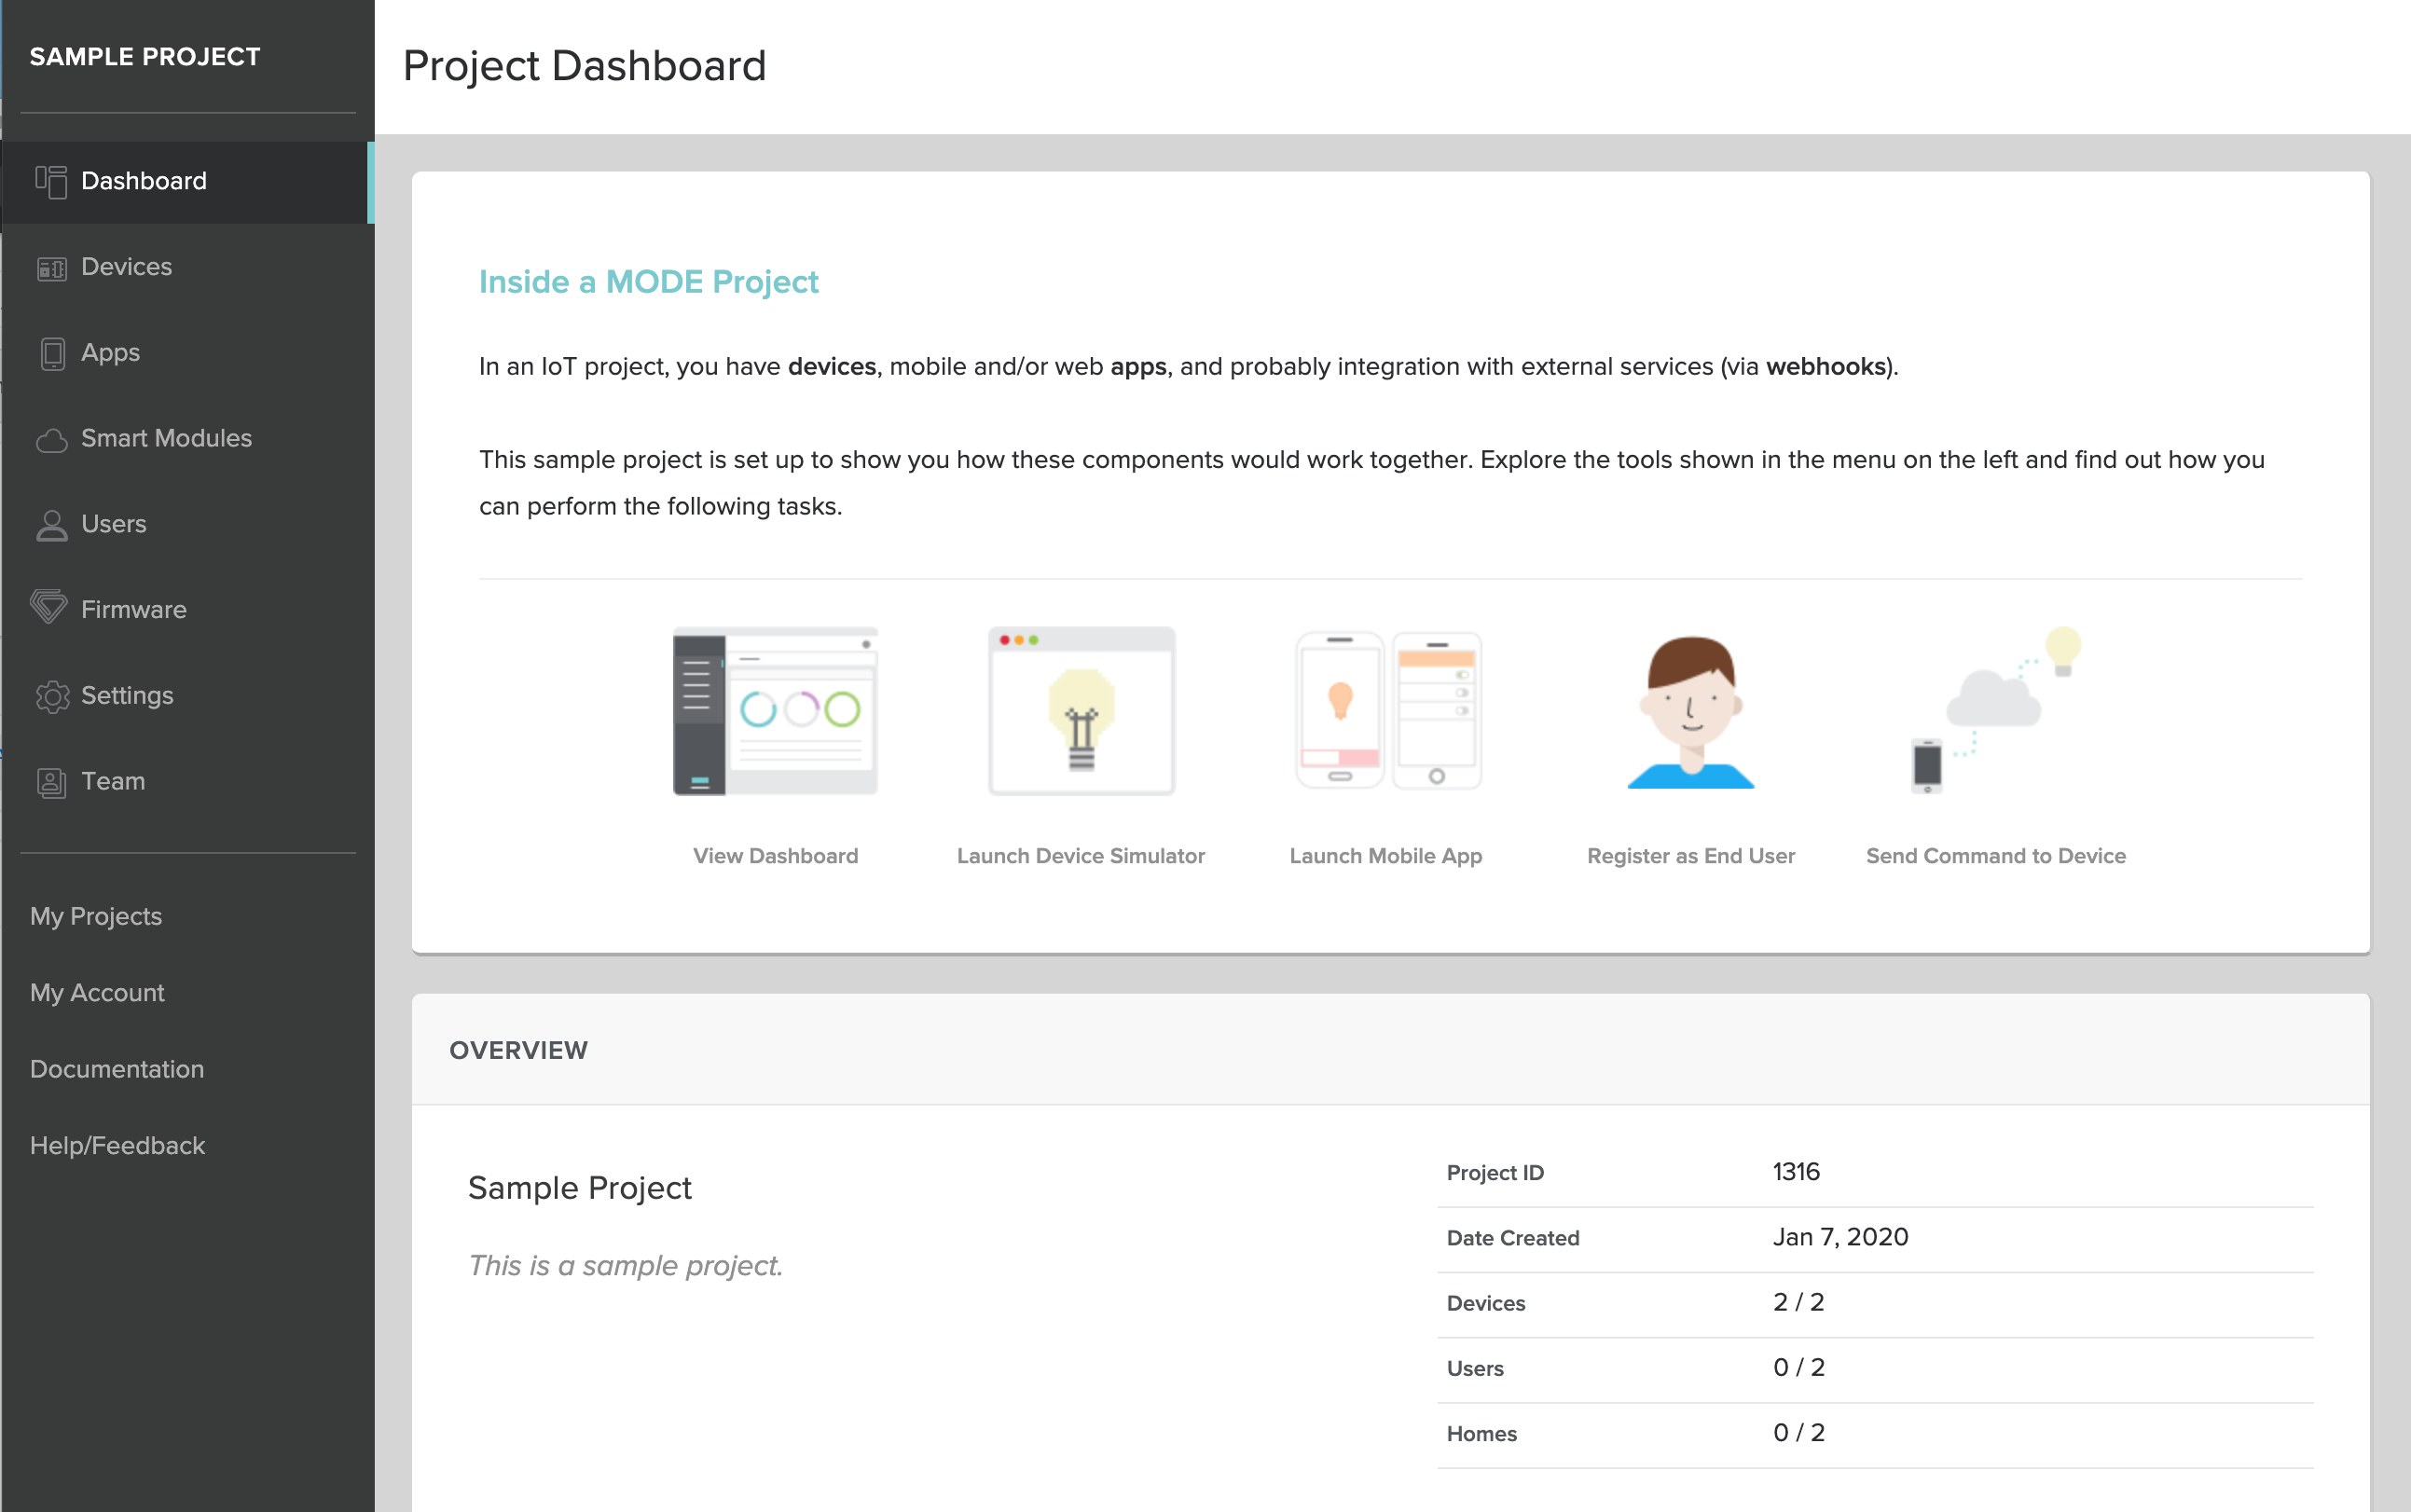 Screenshot - Console Dashboard